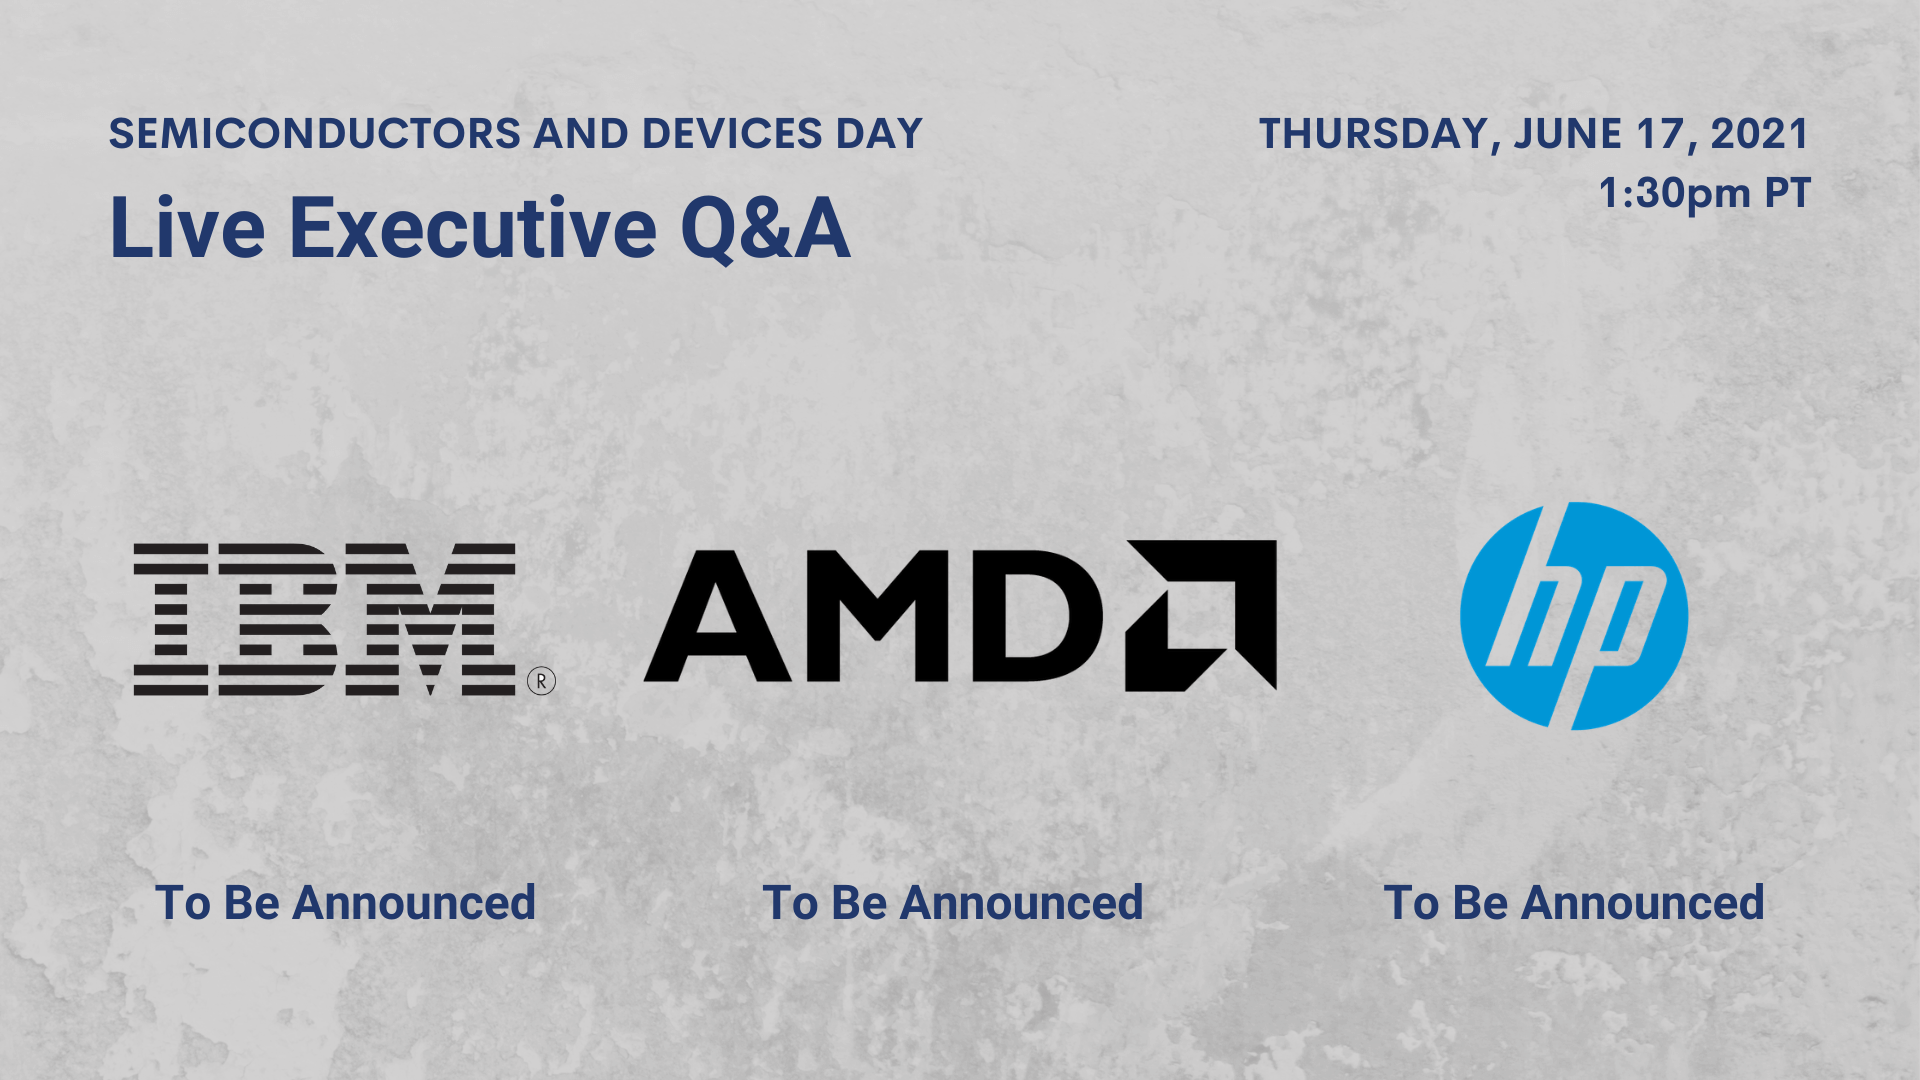 Live Executive Roundtable with executives from AMD, HP, and IBM